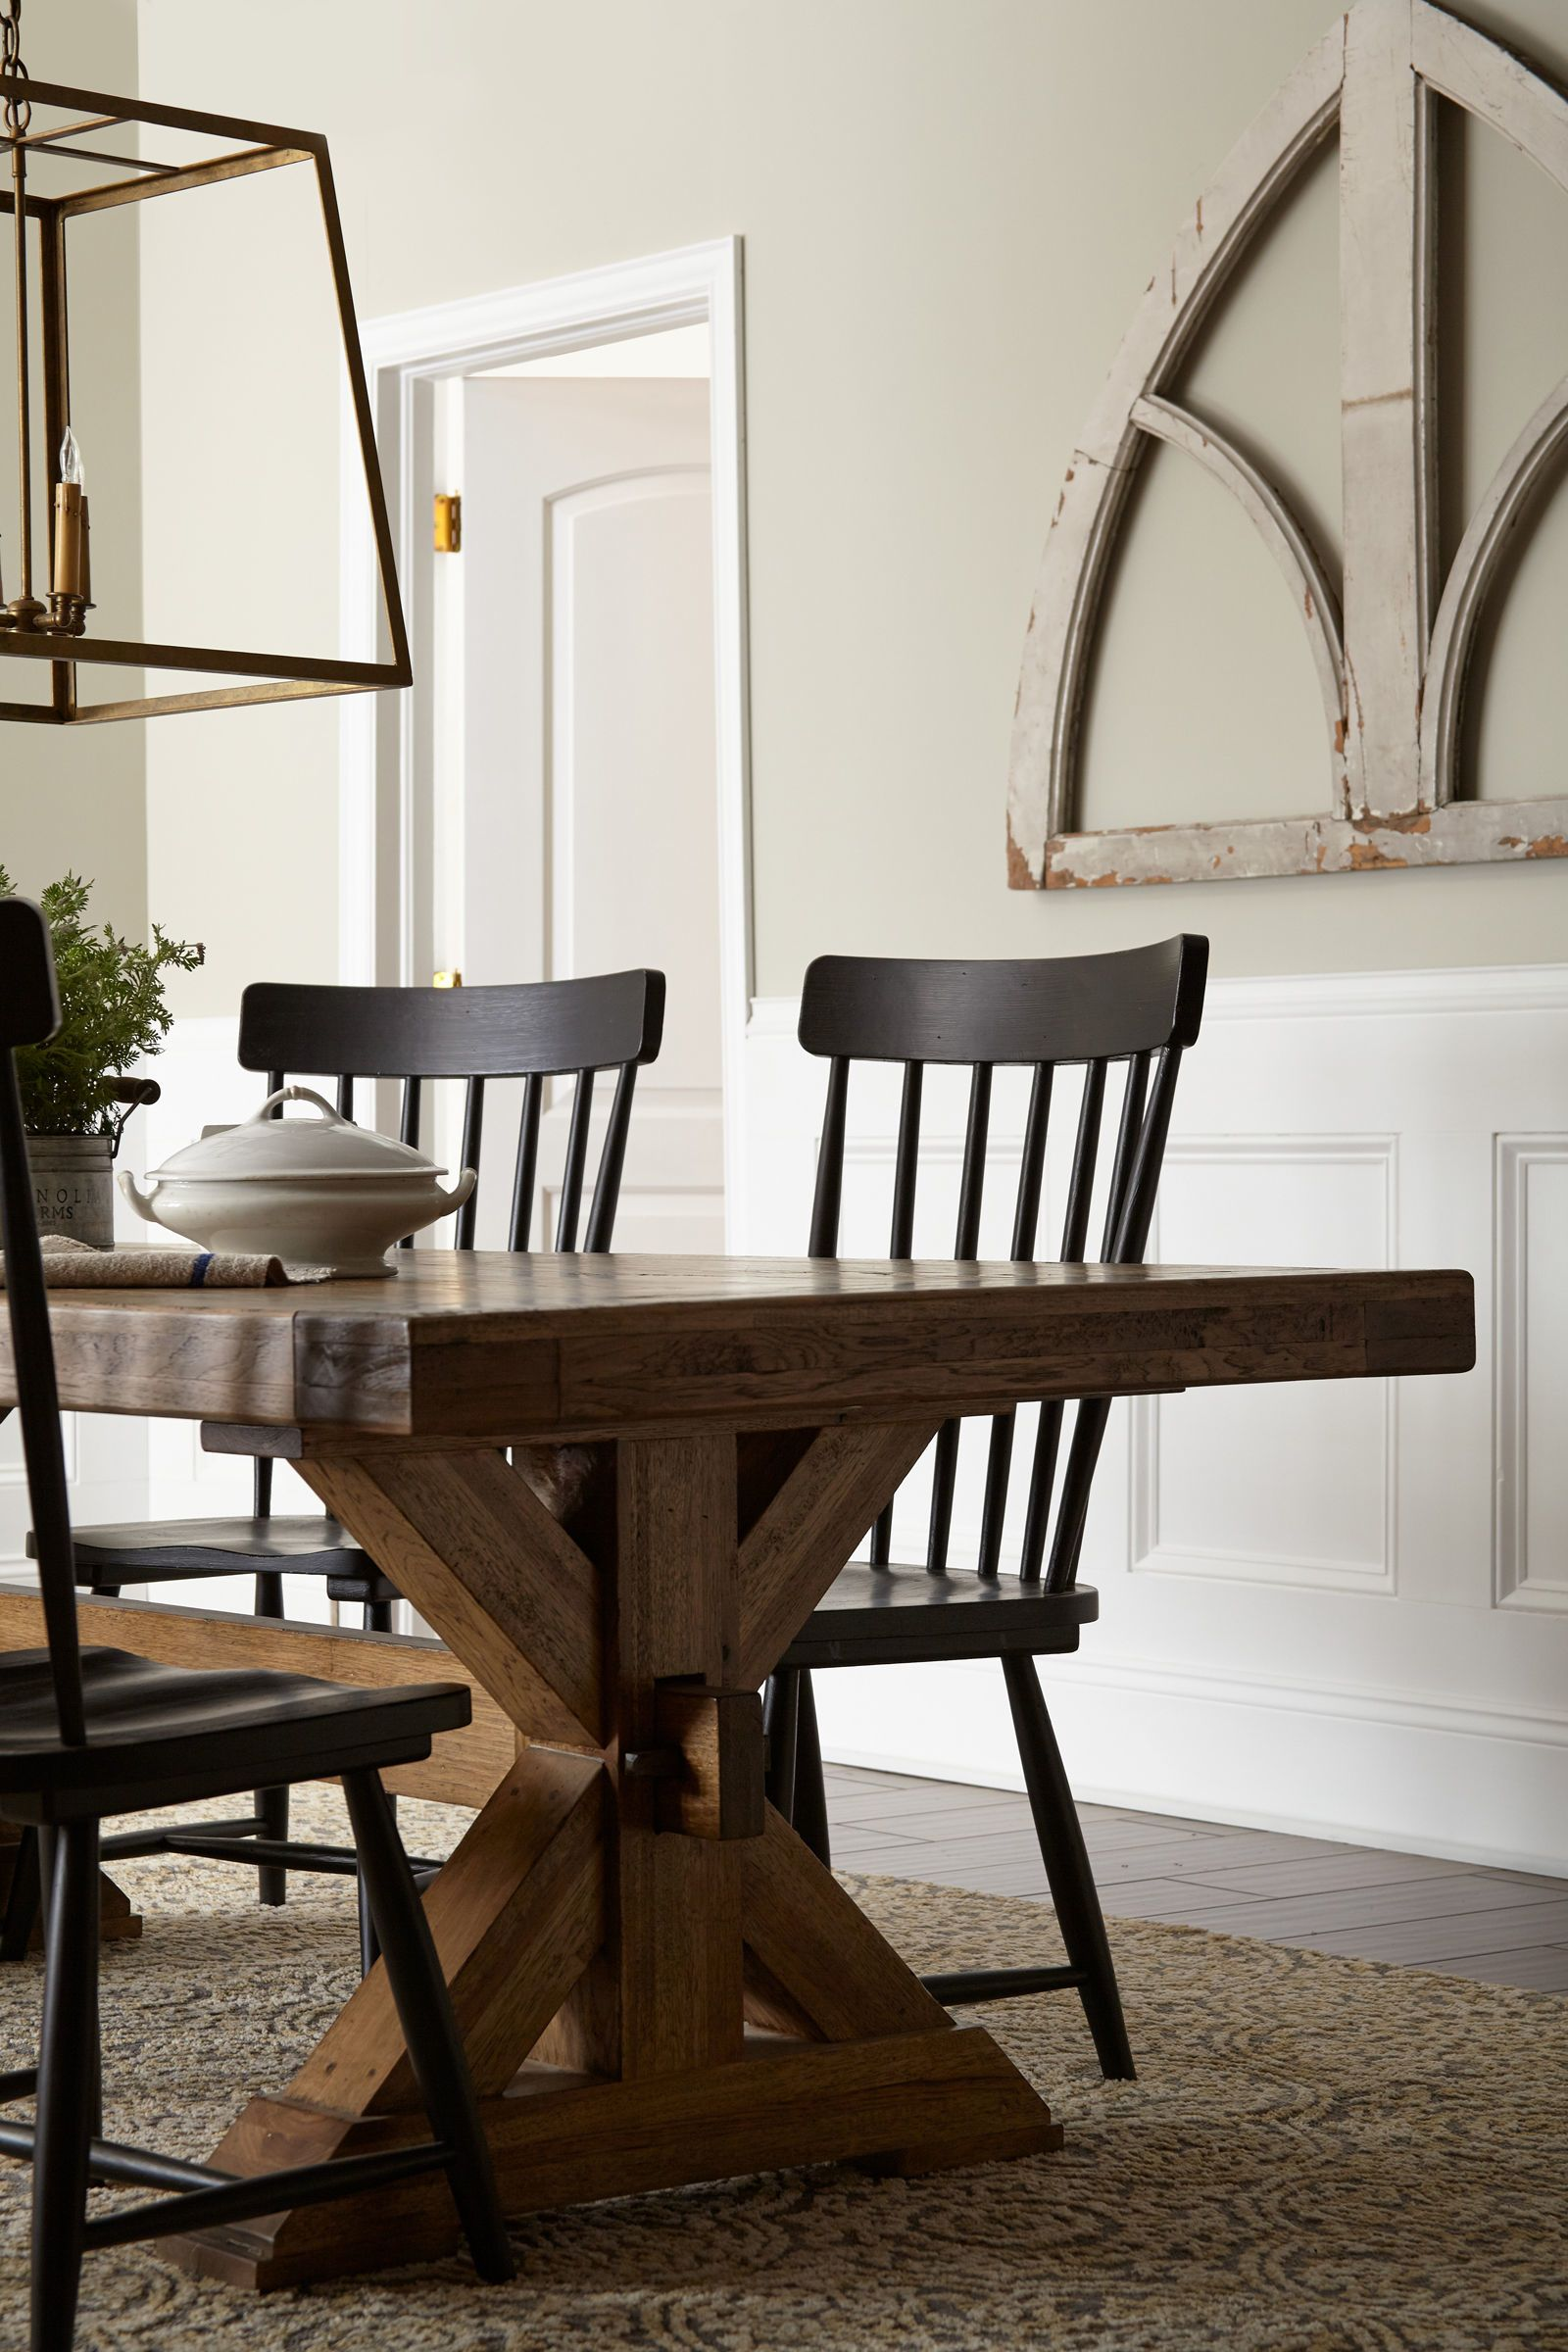 Joanna Gaines Reveals Her 5 Favorite Paint Colors Joanna Gaines Dining Room Dining Room Paint Joanna Gaines Living Room